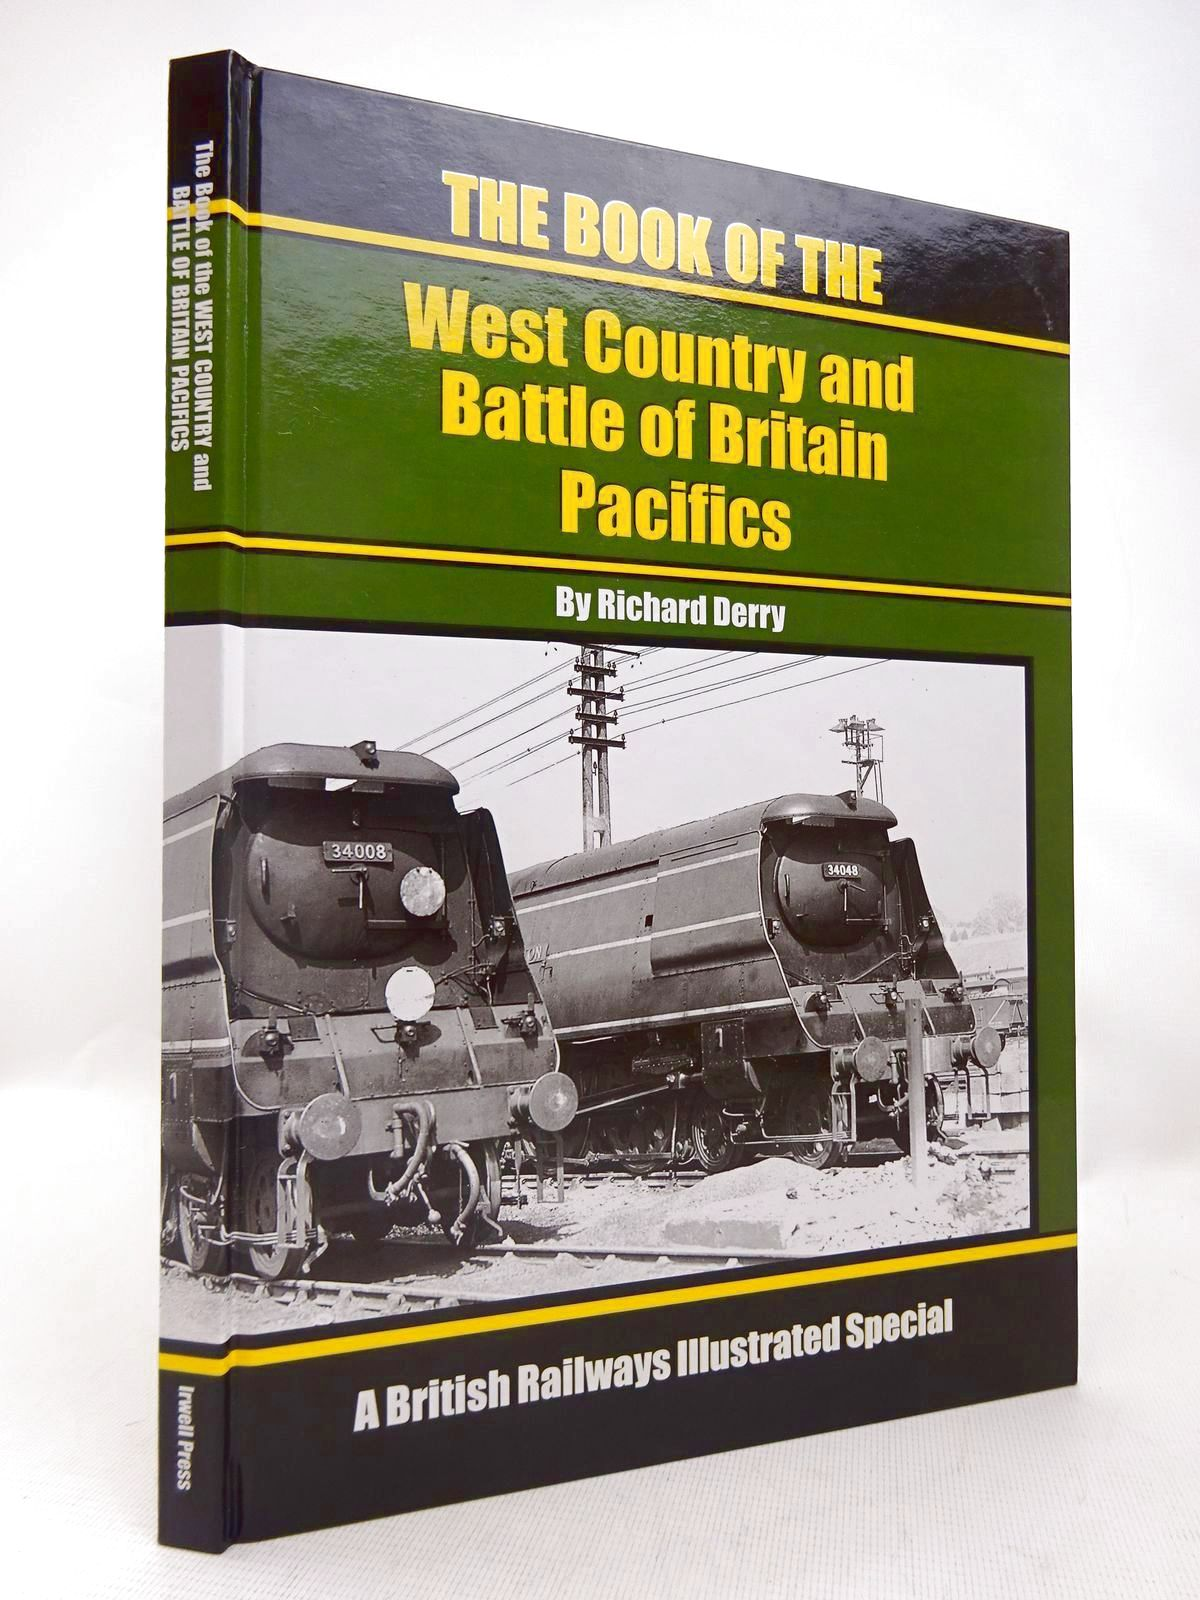 Photo of THE BOOK OF THE WEST COUNTRY AND BATTLE OF BRITAIN PACIFICS written by Derry, Richard published by Irwell Press (STOCK CODE: 1816560)  for sale by Stella & Rose's Books